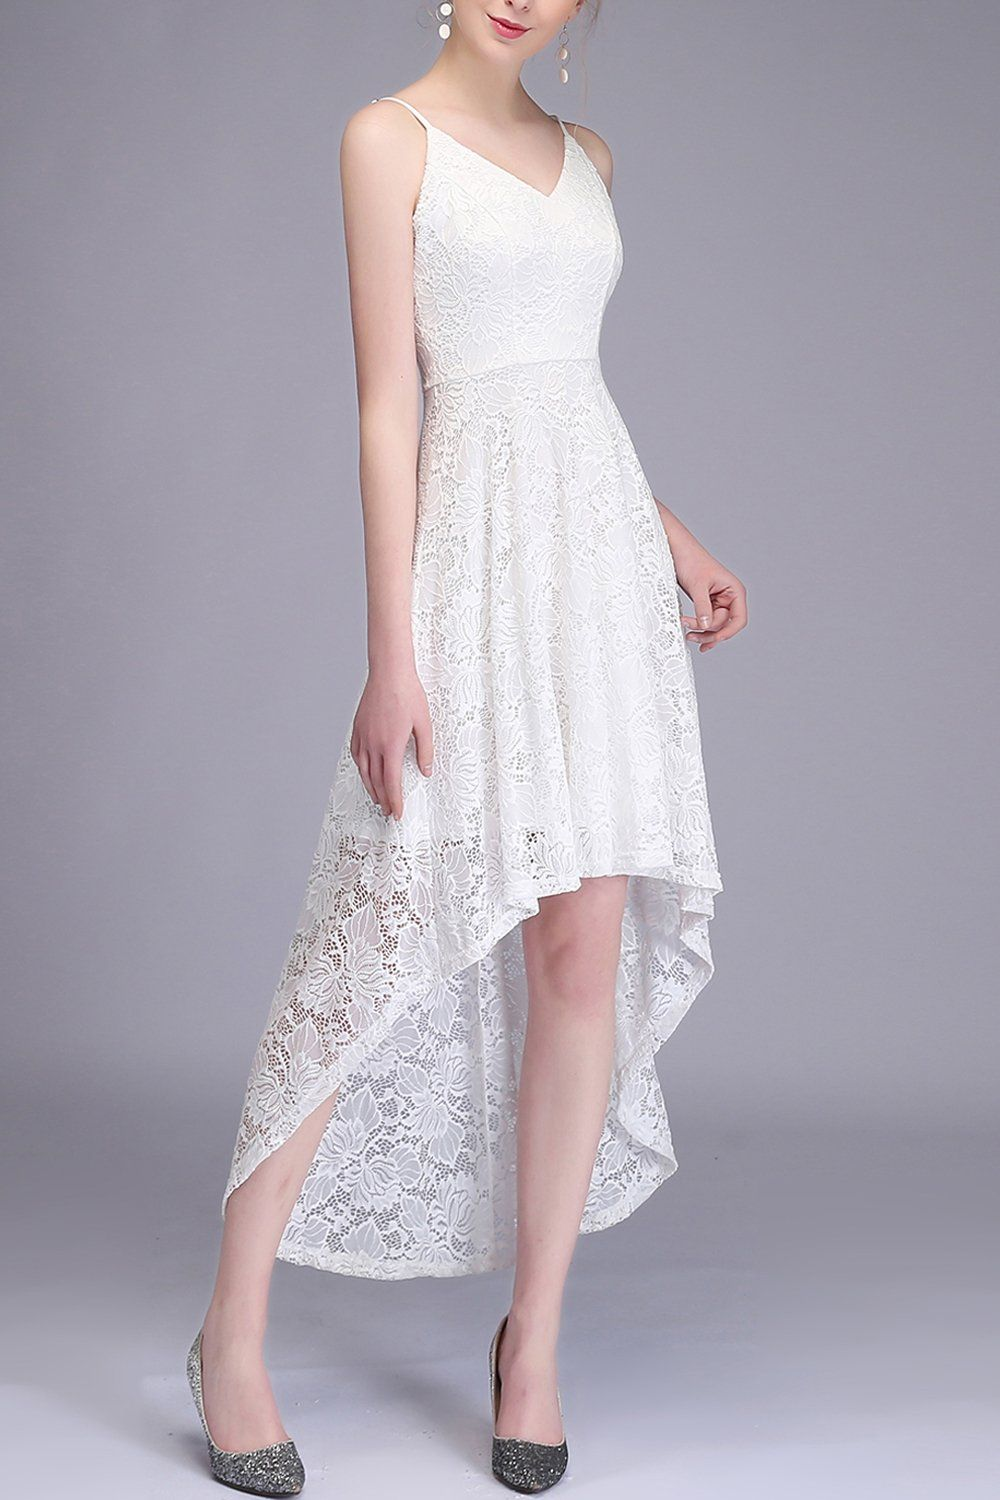 High Low Lace White Dress High Low Lace Dress Lace Homecoming Dresses Dresses [ 1500 x 1000 Pixel ]